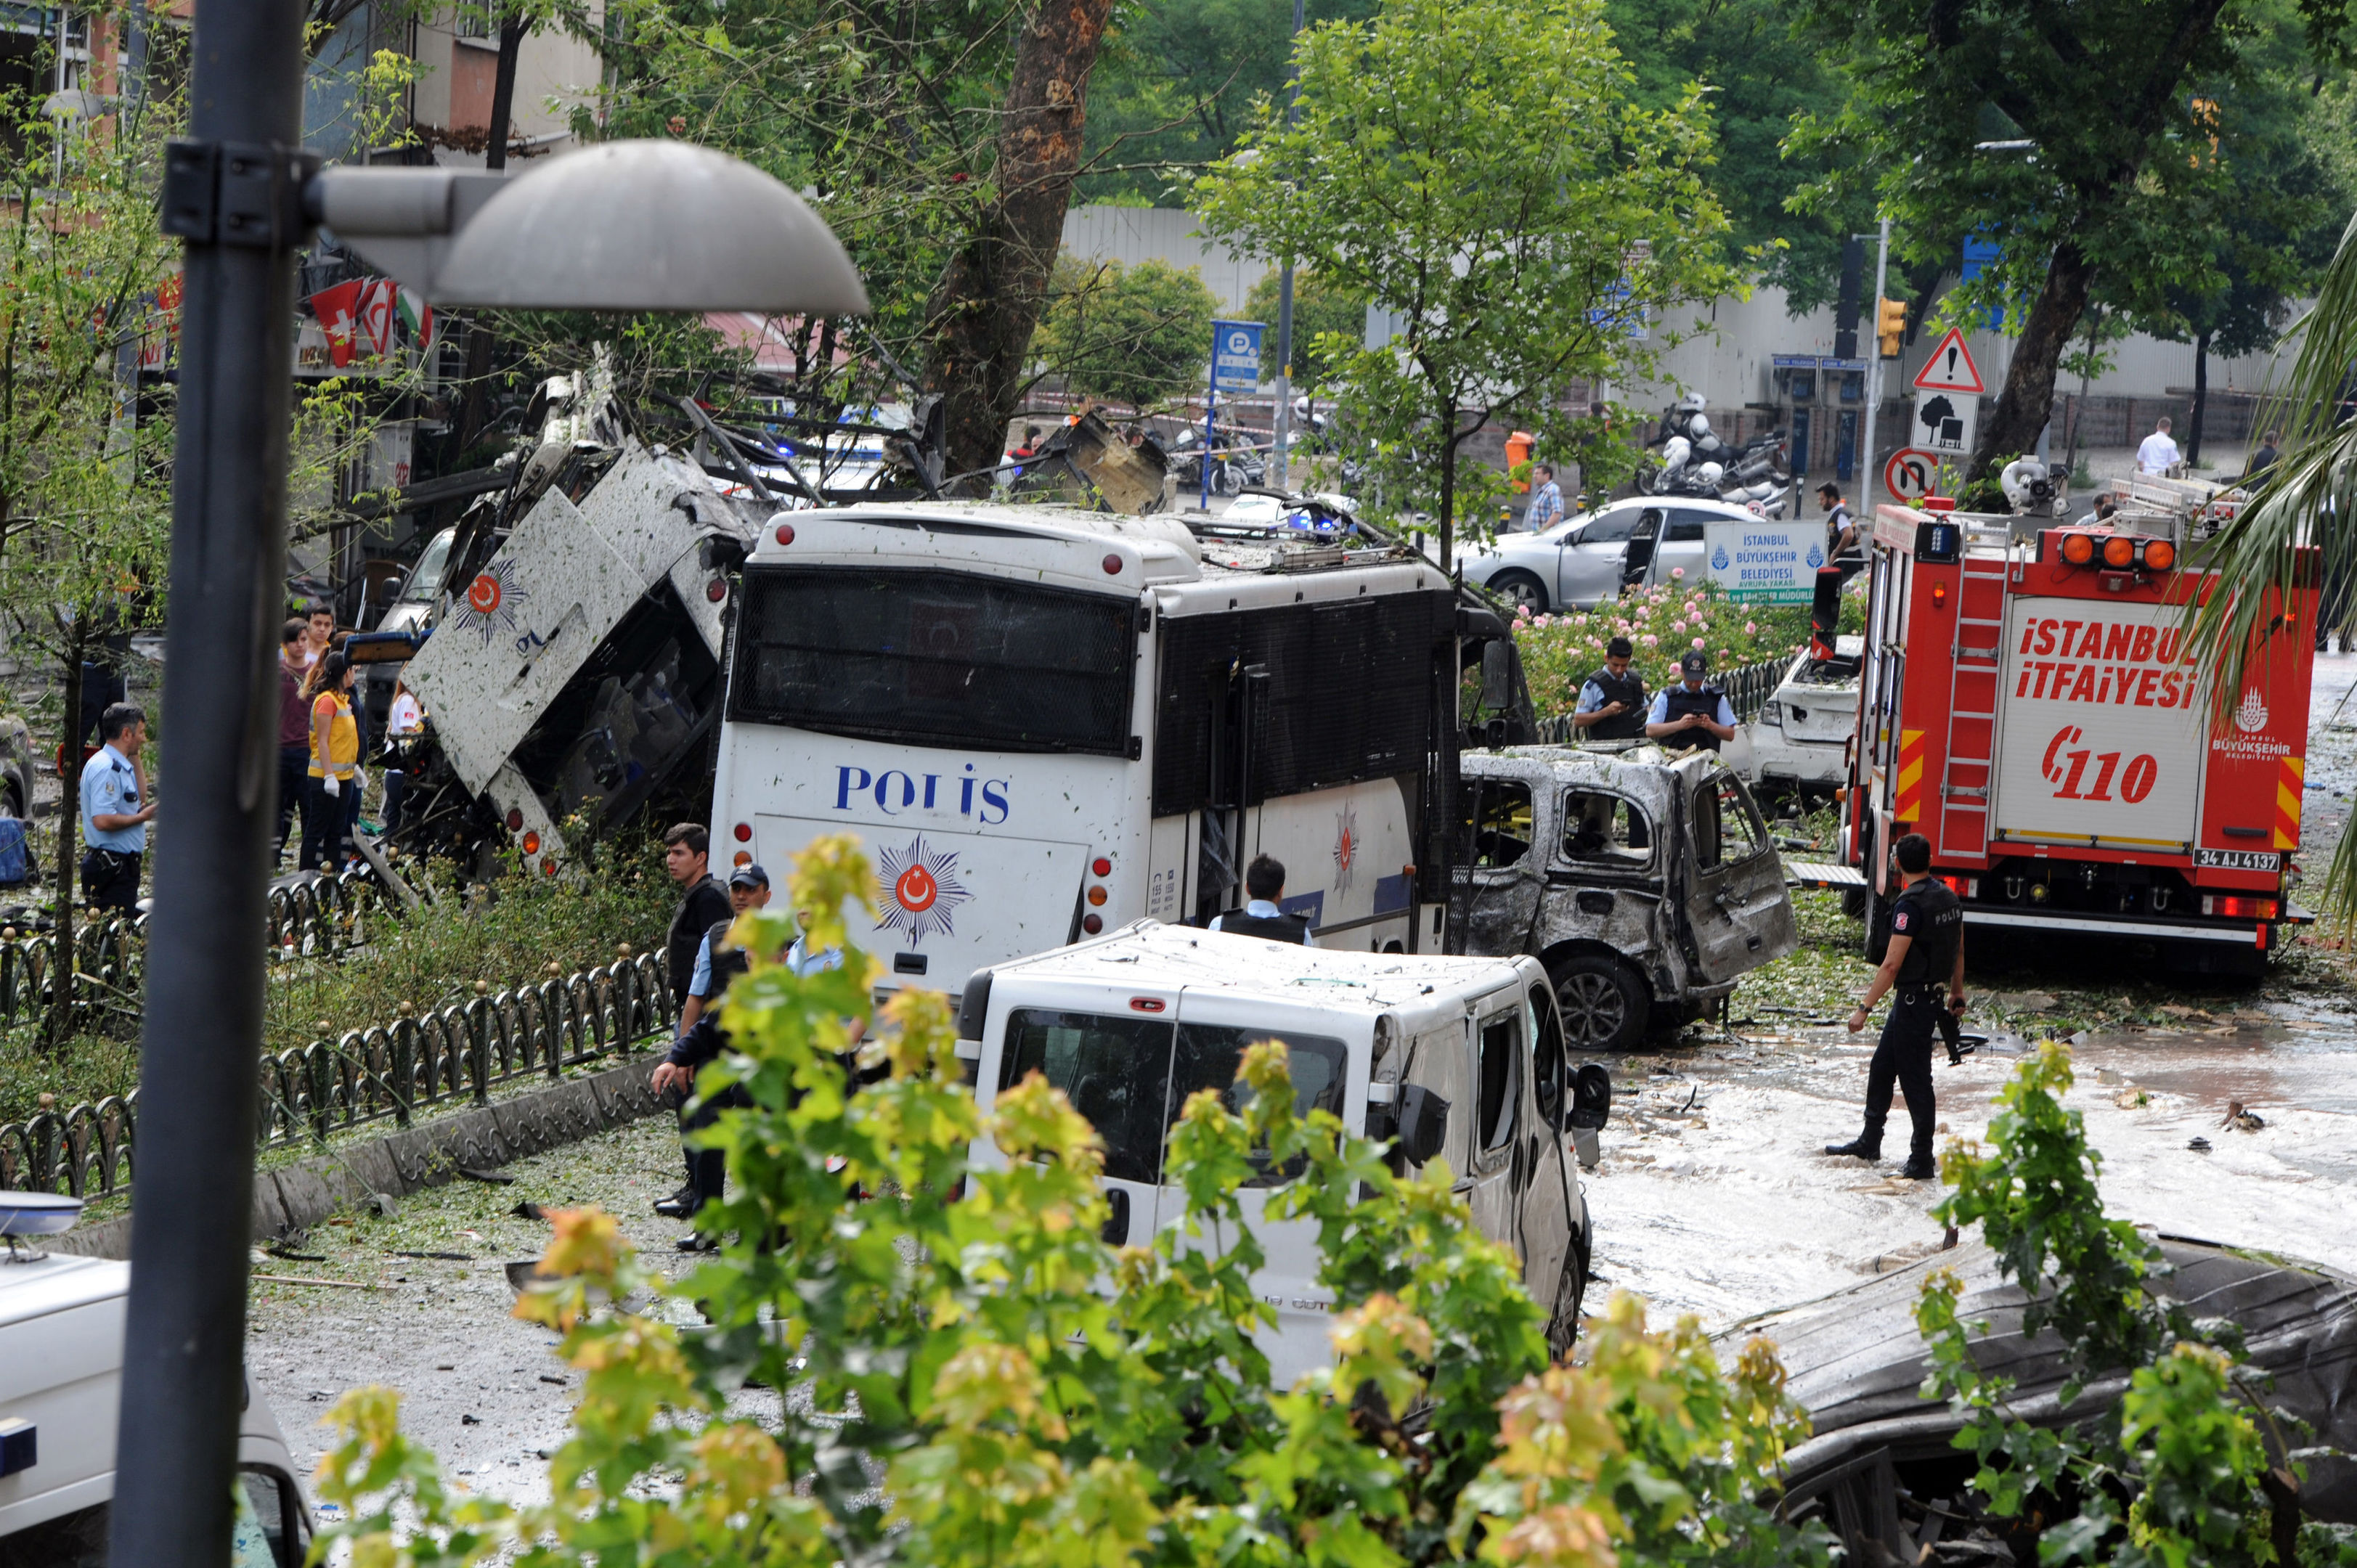 Turkish security officials and firefighters work at the explosion site after a bus carrying riot police was struck by a bomb in Istanbul.